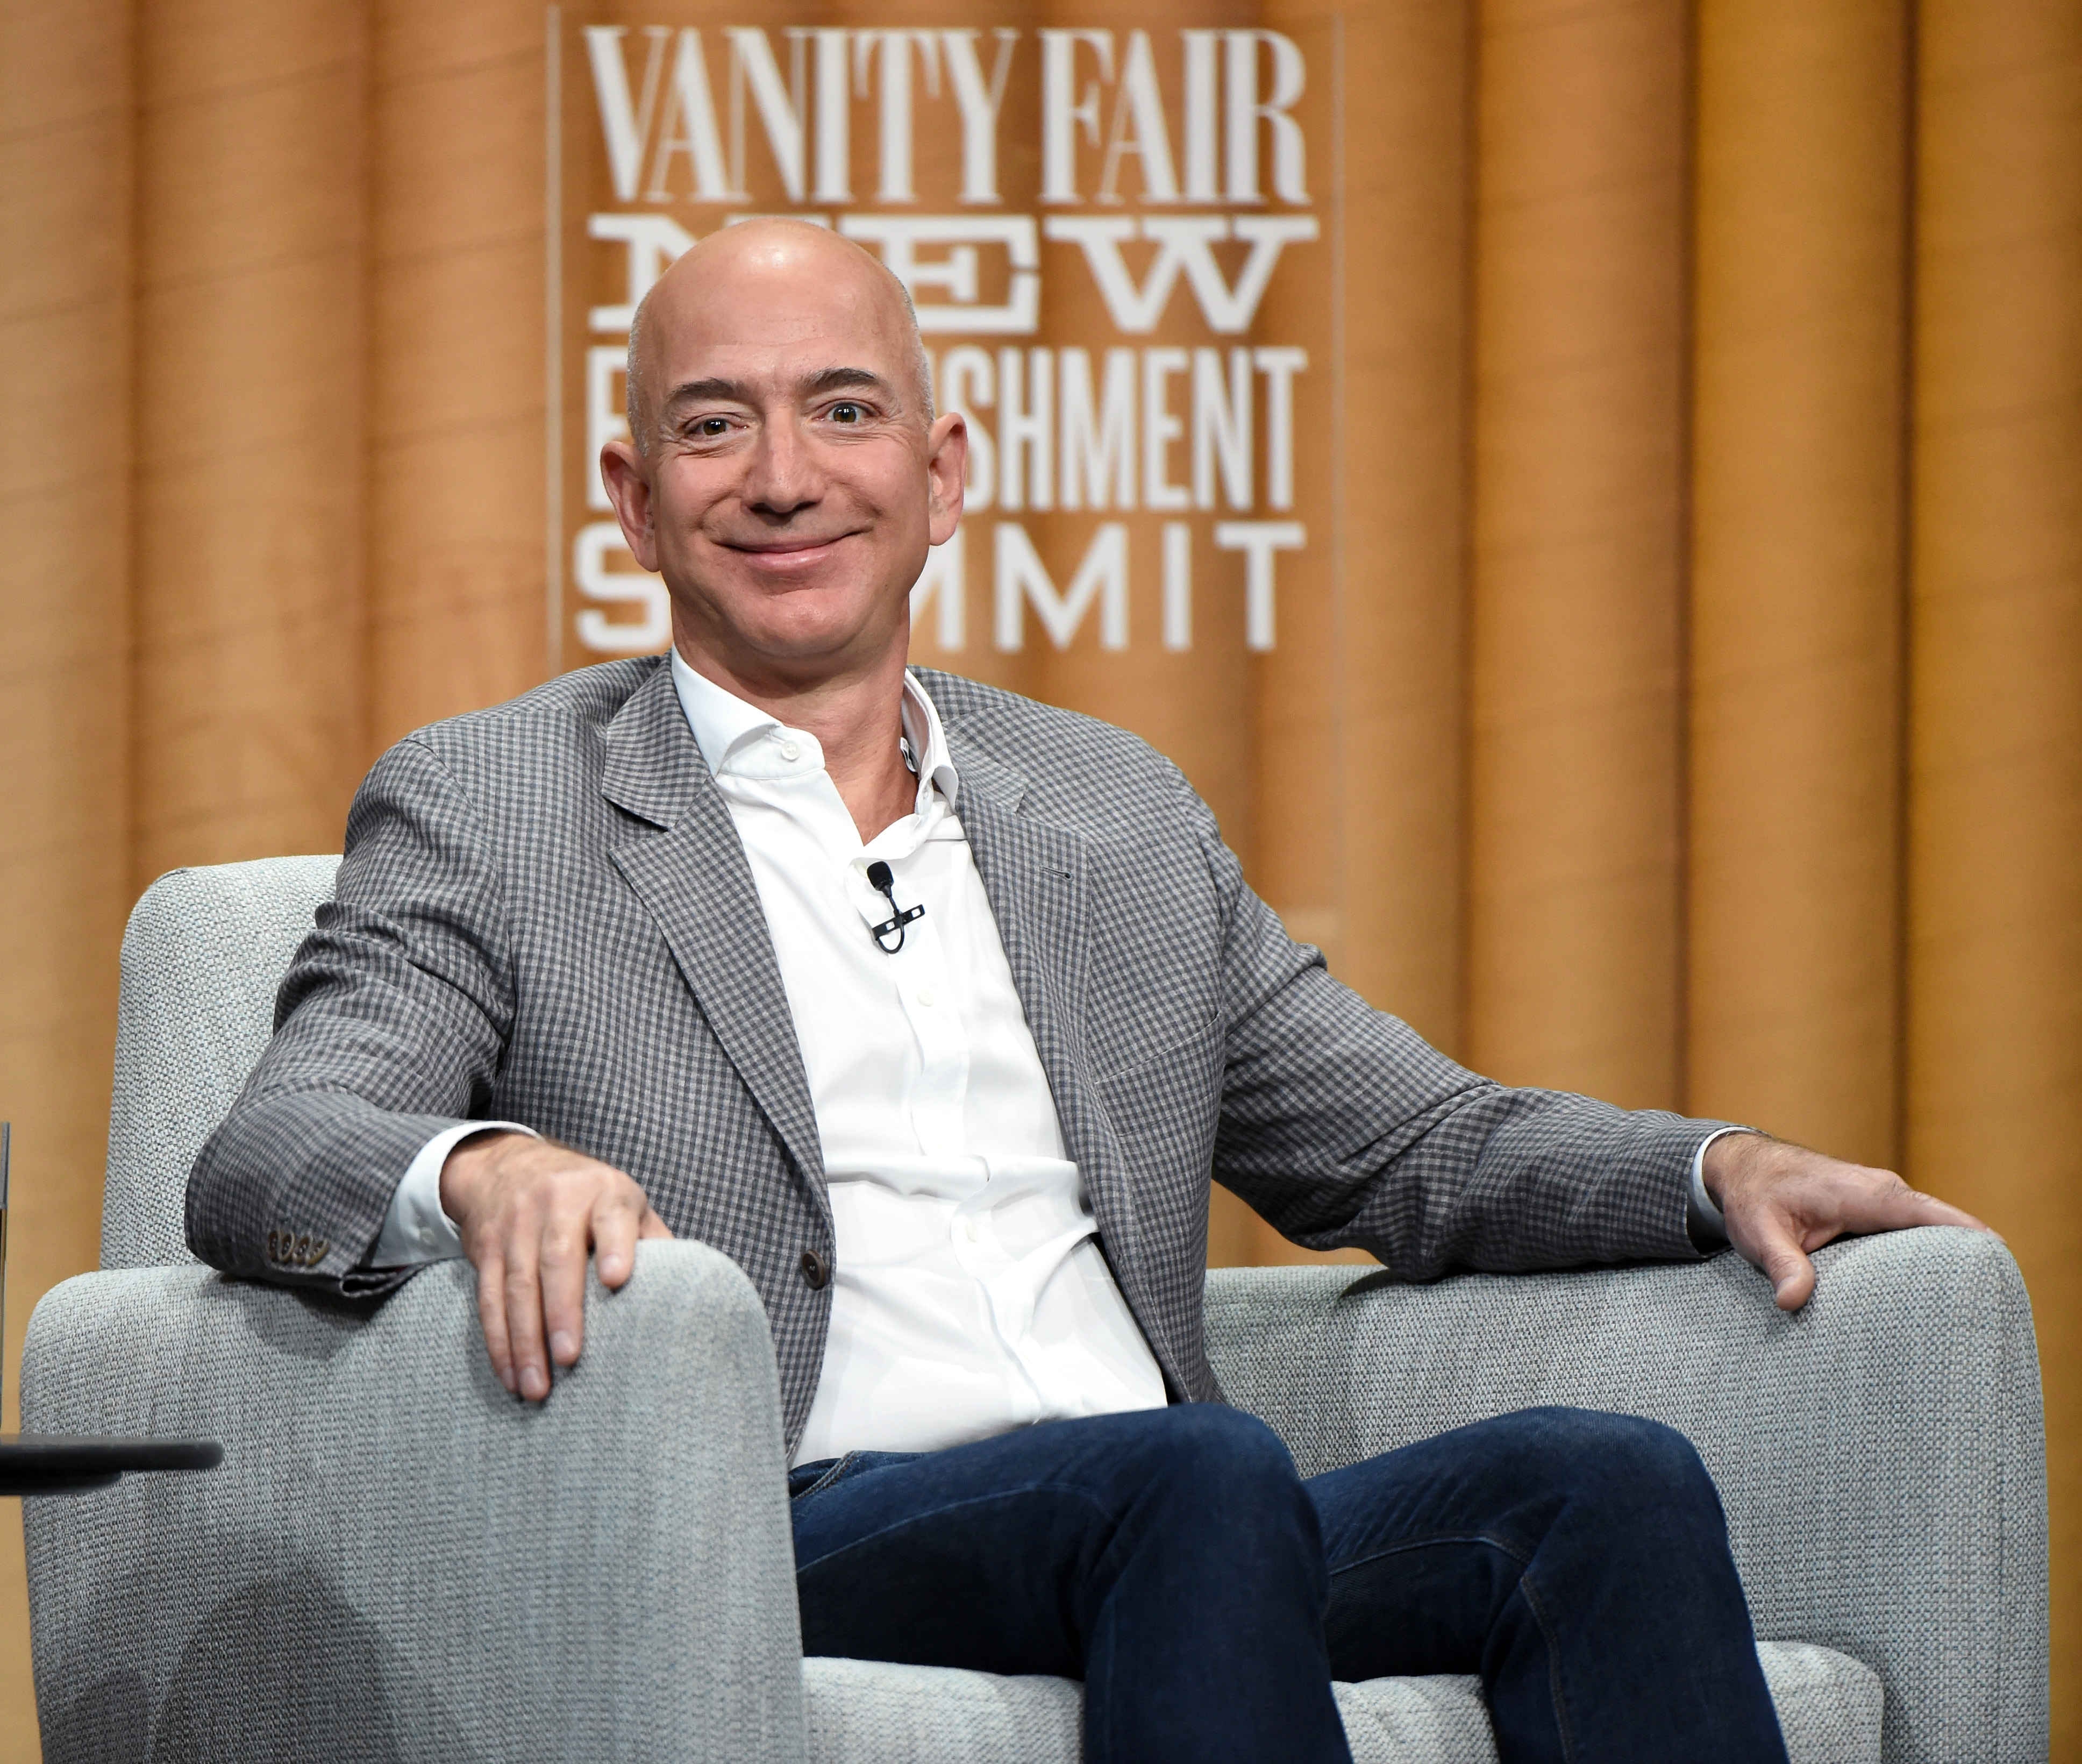 Amzn After Hours Stock Quote: Amazon Plunges On Earnings Miss